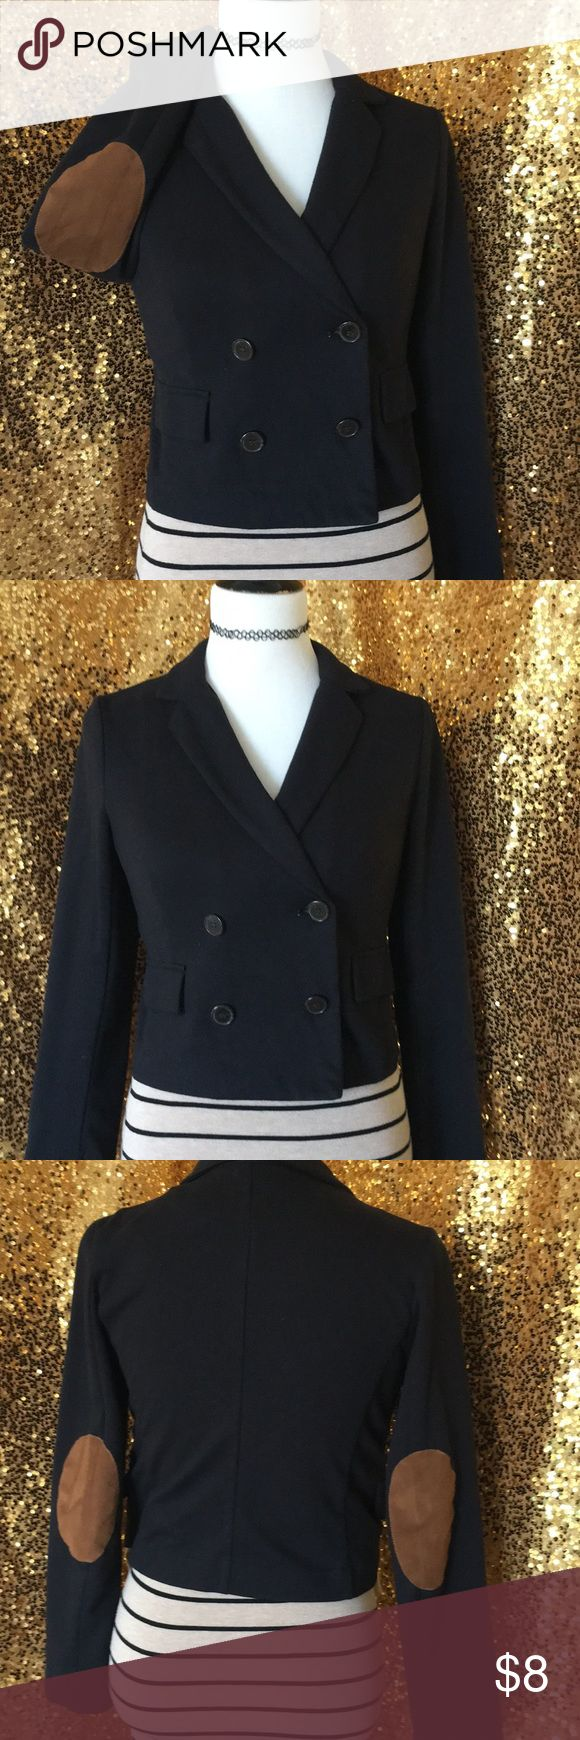 Black cotton blazer with hobo patches Soft casual blazer size s Tan suede elbow patches Jackets & Coats